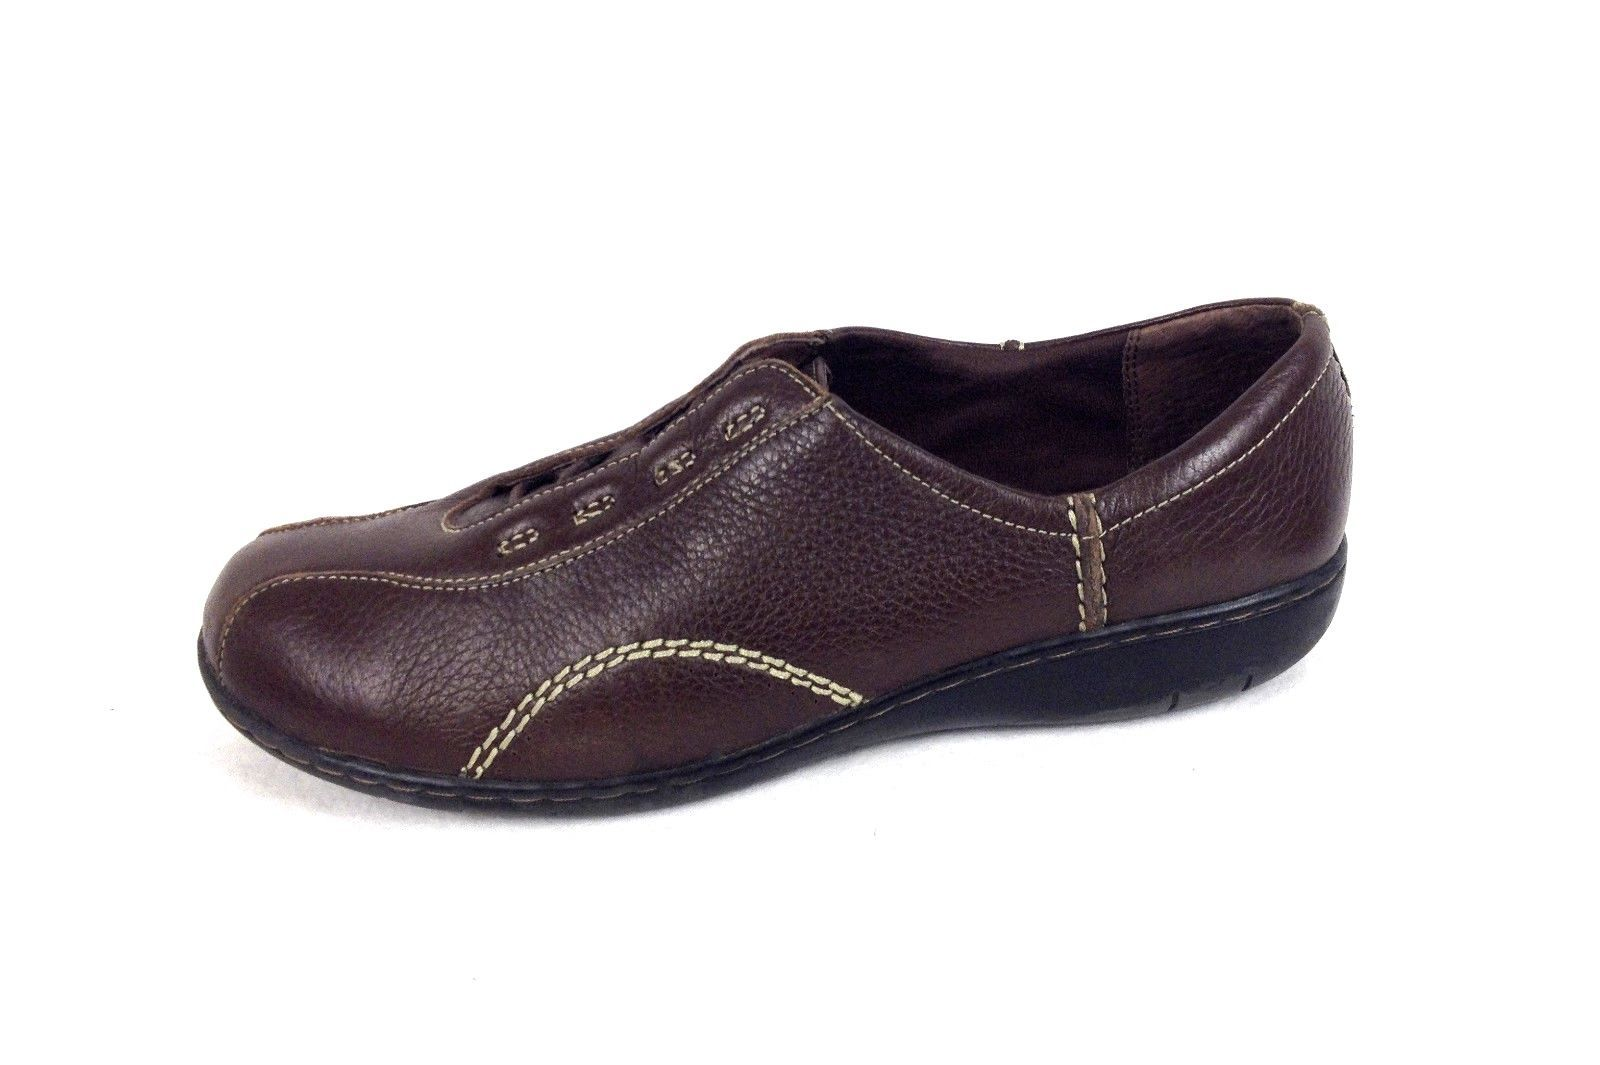 clarks shoes 10 womens brown leather oxfords for sale